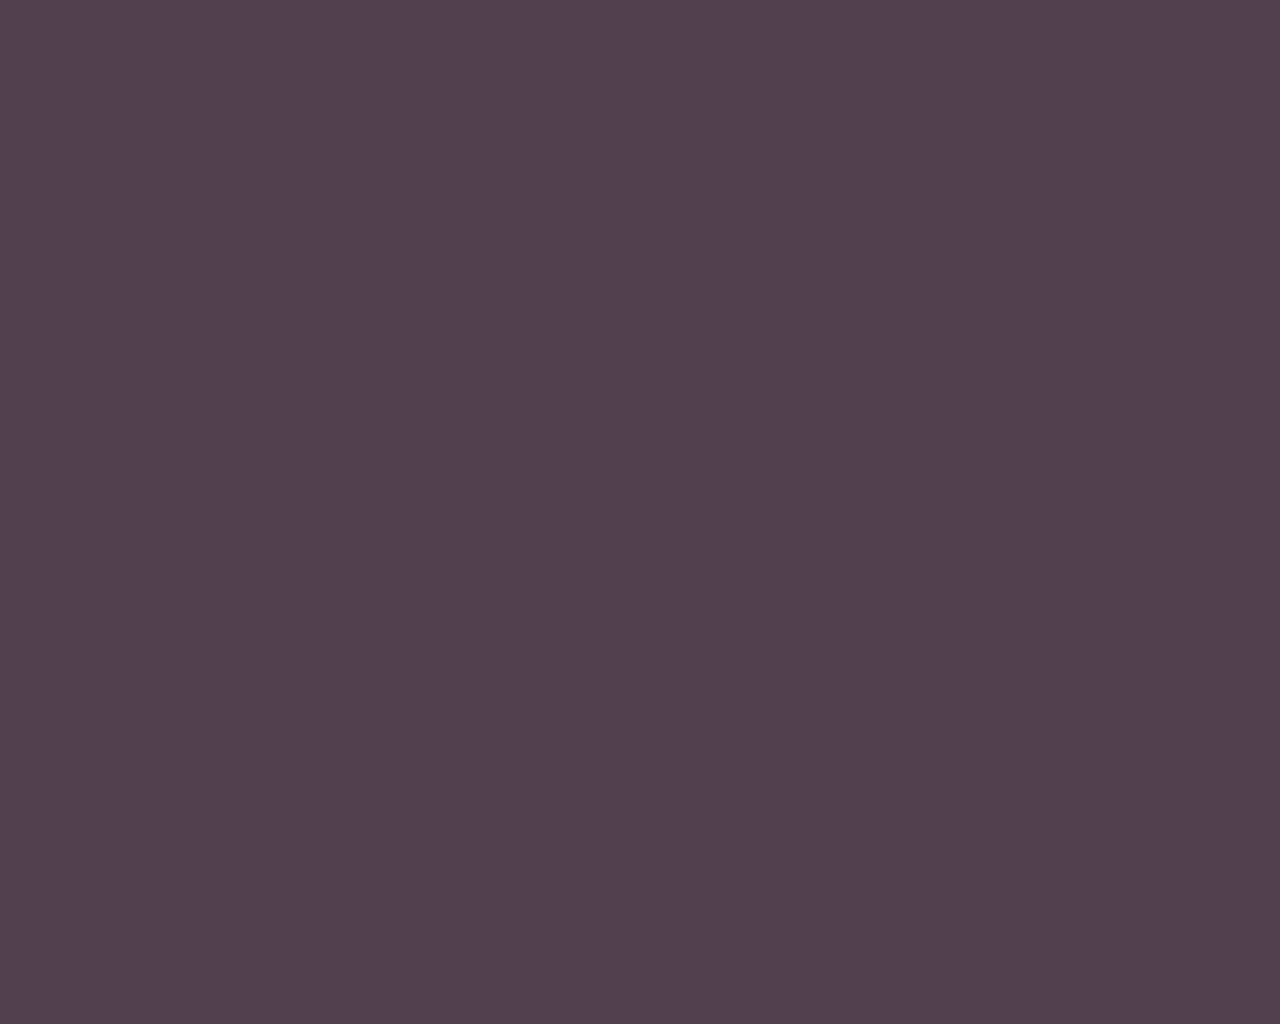 1280x1024 Purple Taupe Solid Color Background